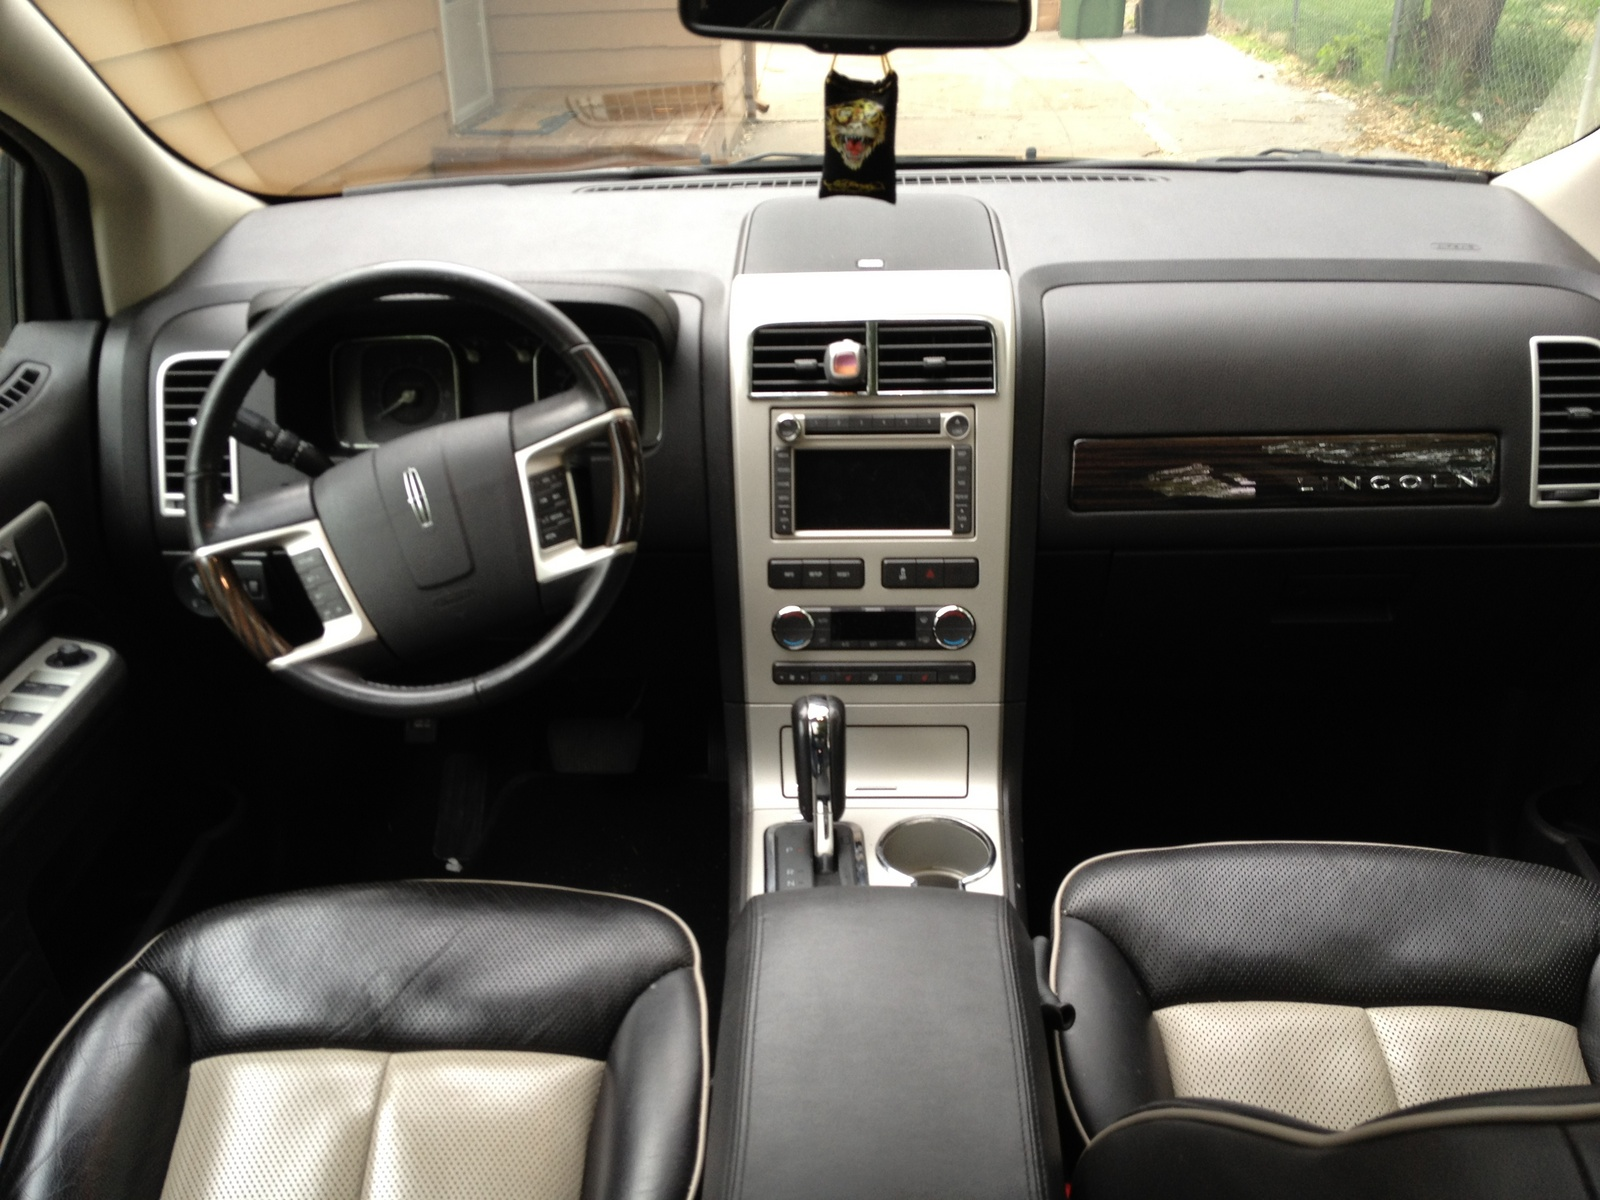 2008 lincoln mkx interior pictures cargurus. Black Bedroom Furniture Sets. Home Design Ideas